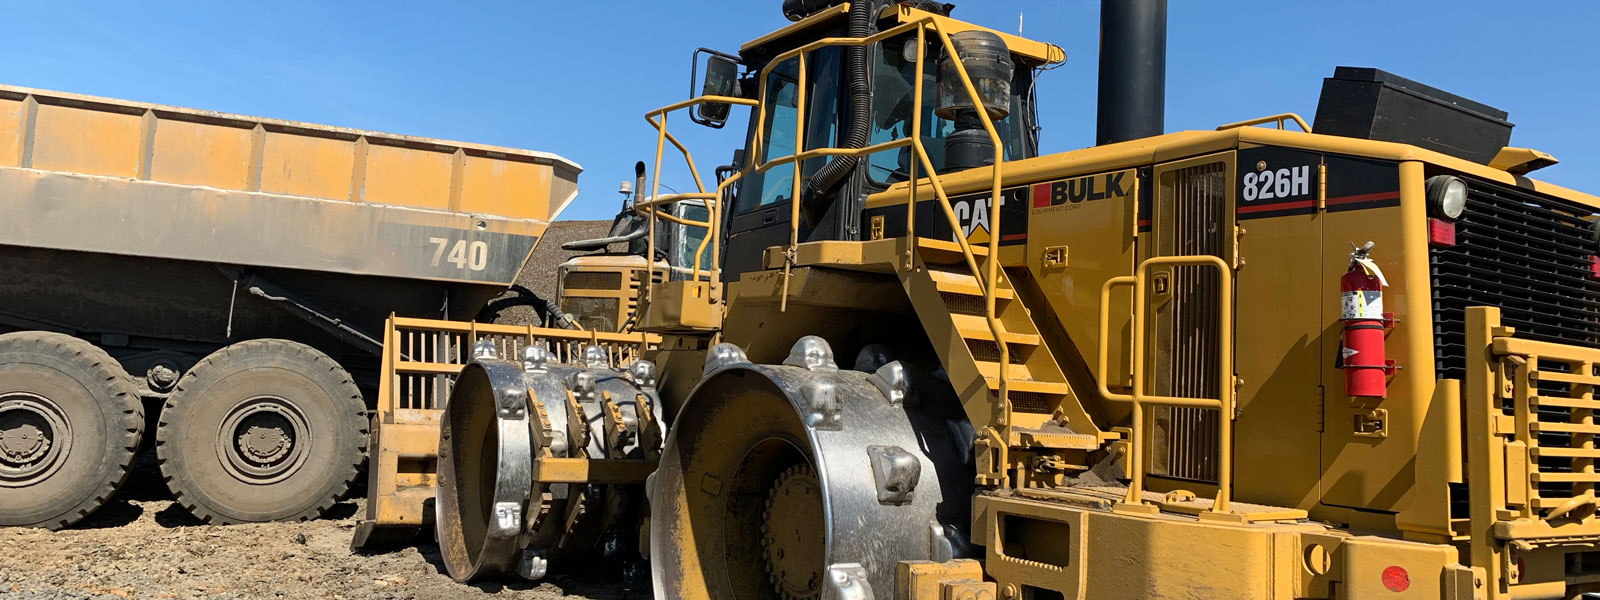 Cat® 826h And Dump Truck At Project Site